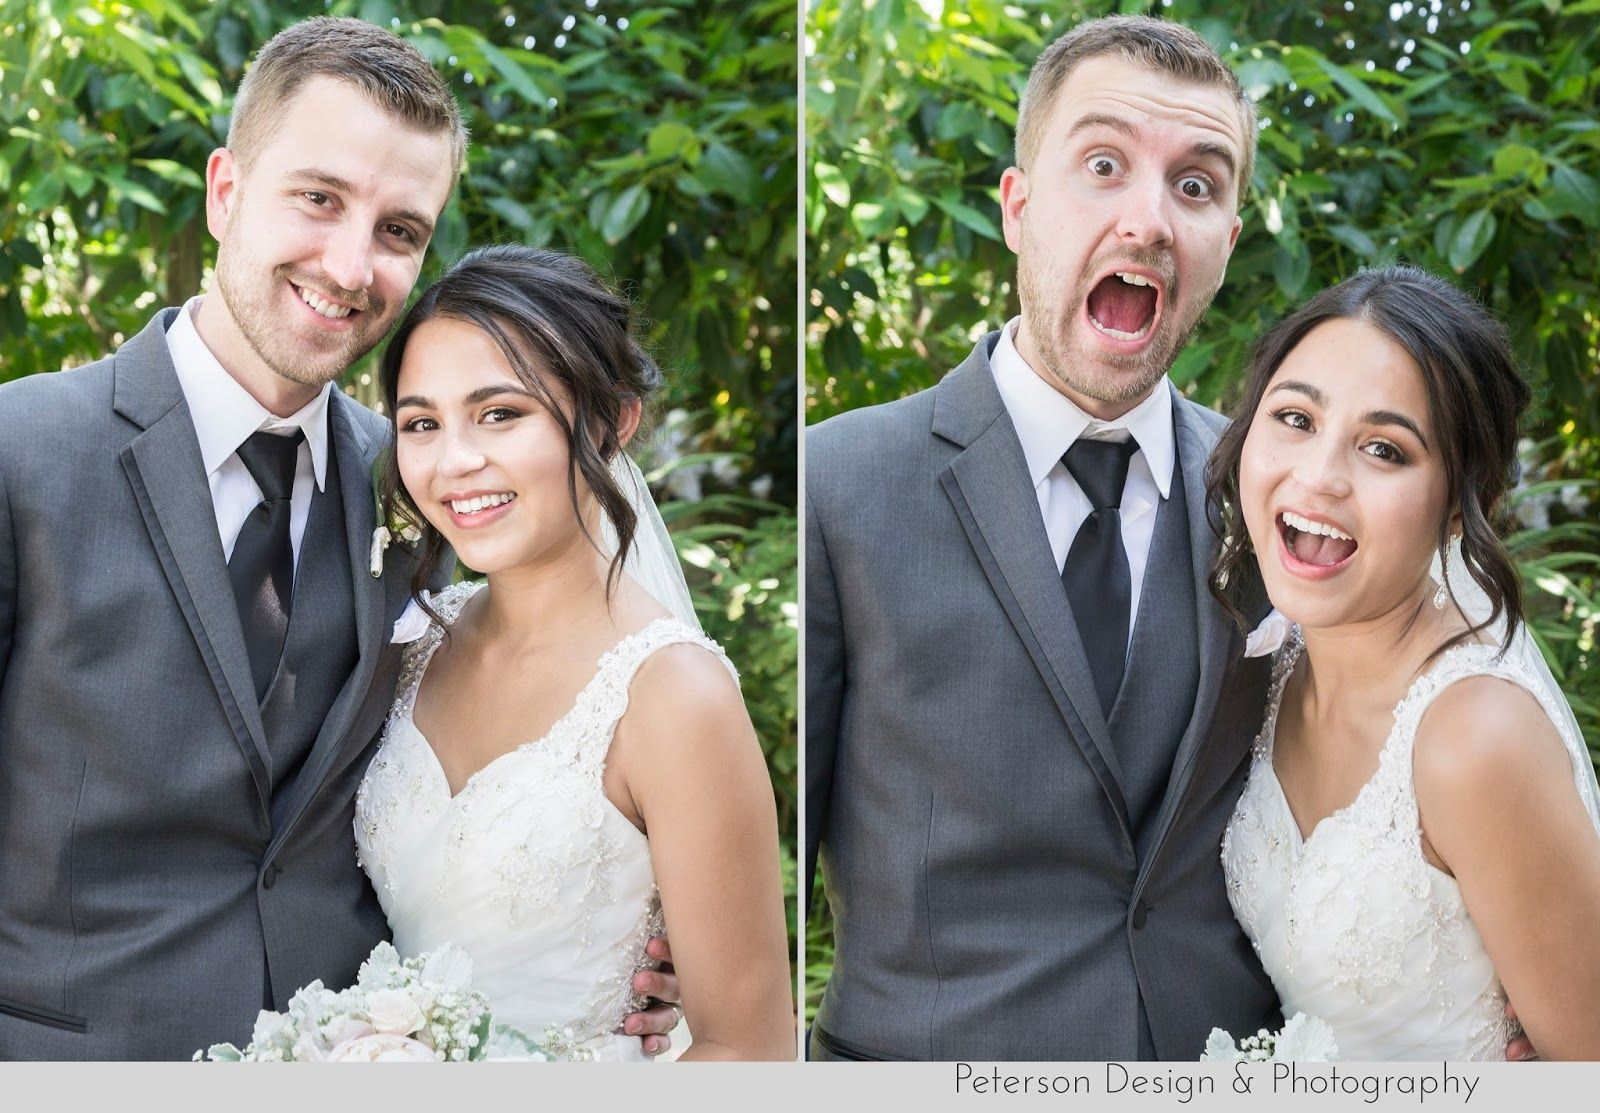 Cute And Funny Faces With Bride Groom At This Blush Pink Fl Filled Wedding